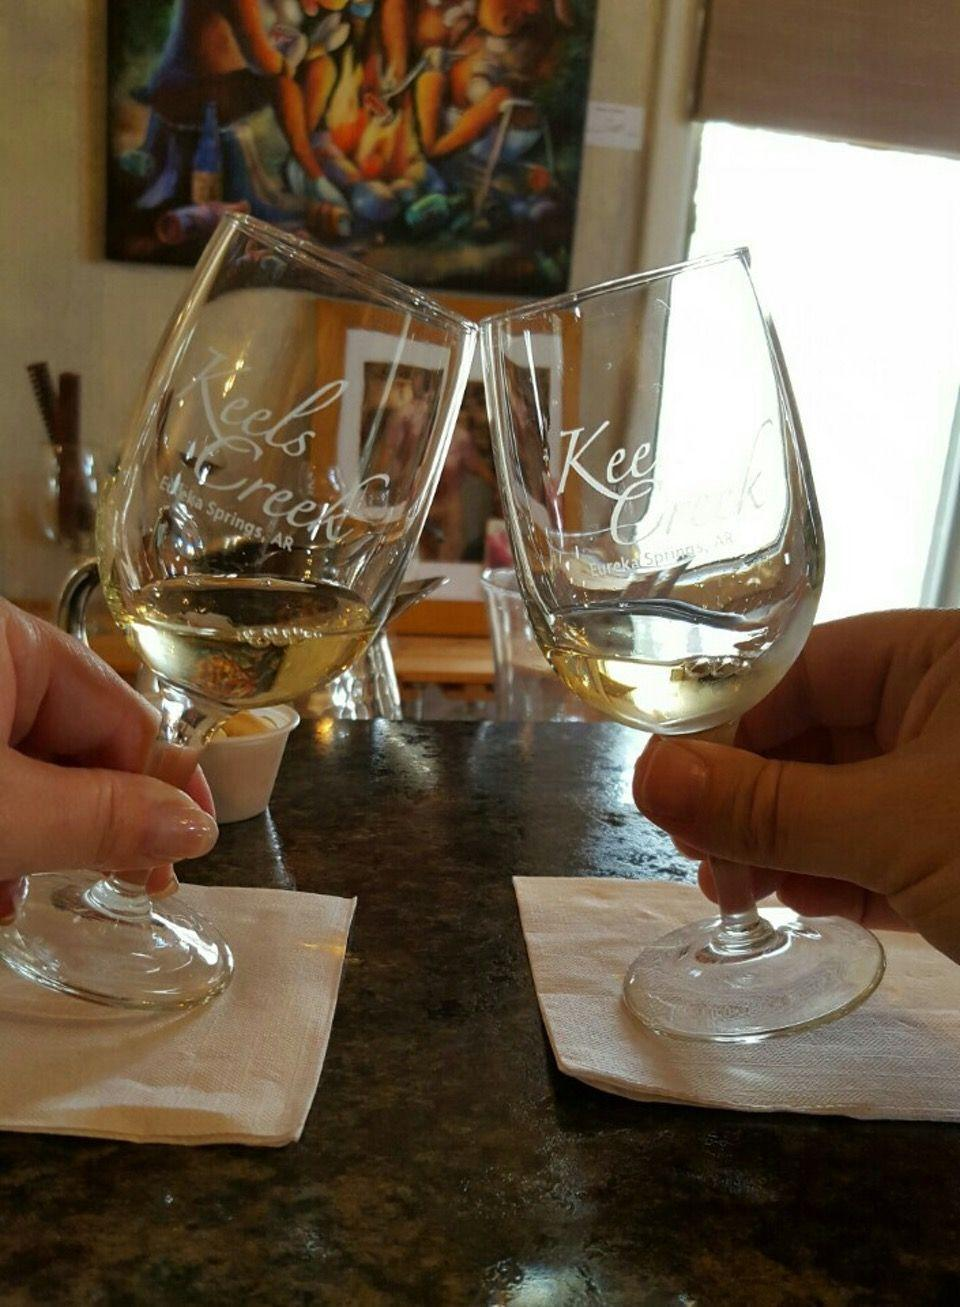 """<p><a href=""""https://foursquare.com/v/keels-creek-winery/4bd9a319d2cbc928112ad1ad"""" rel=""""nofollow noopener"""" target=""""_blank"""" data-ylk=""""slk:Keels Creek Winery"""" class=""""link rapid-noclick-resp"""">Keels Creek Winery</a> in Eureka Springs</p><p>""""Awesome <span class=""""entity tip_taste_match"""">staff</span>! Heather rocked us with her <span class=""""entity tip_taste_match"""">knowledge</span> and was so approachable and <span class=""""entity tip_taste_match"""">friendly</span>. Great for beginners or advanced questions.<span class=""""redactor-invisible-space"""">"""" - Foursquare user <a href=""""https://foursquare.com/user/14755656"""" rel=""""nofollow noopener"""" target=""""_blank"""" data-ylk=""""slk:Elisabeth Abernathy"""" class=""""link rapid-noclick-resp"""">Elisabeth Abernathy</a></span></p>"""